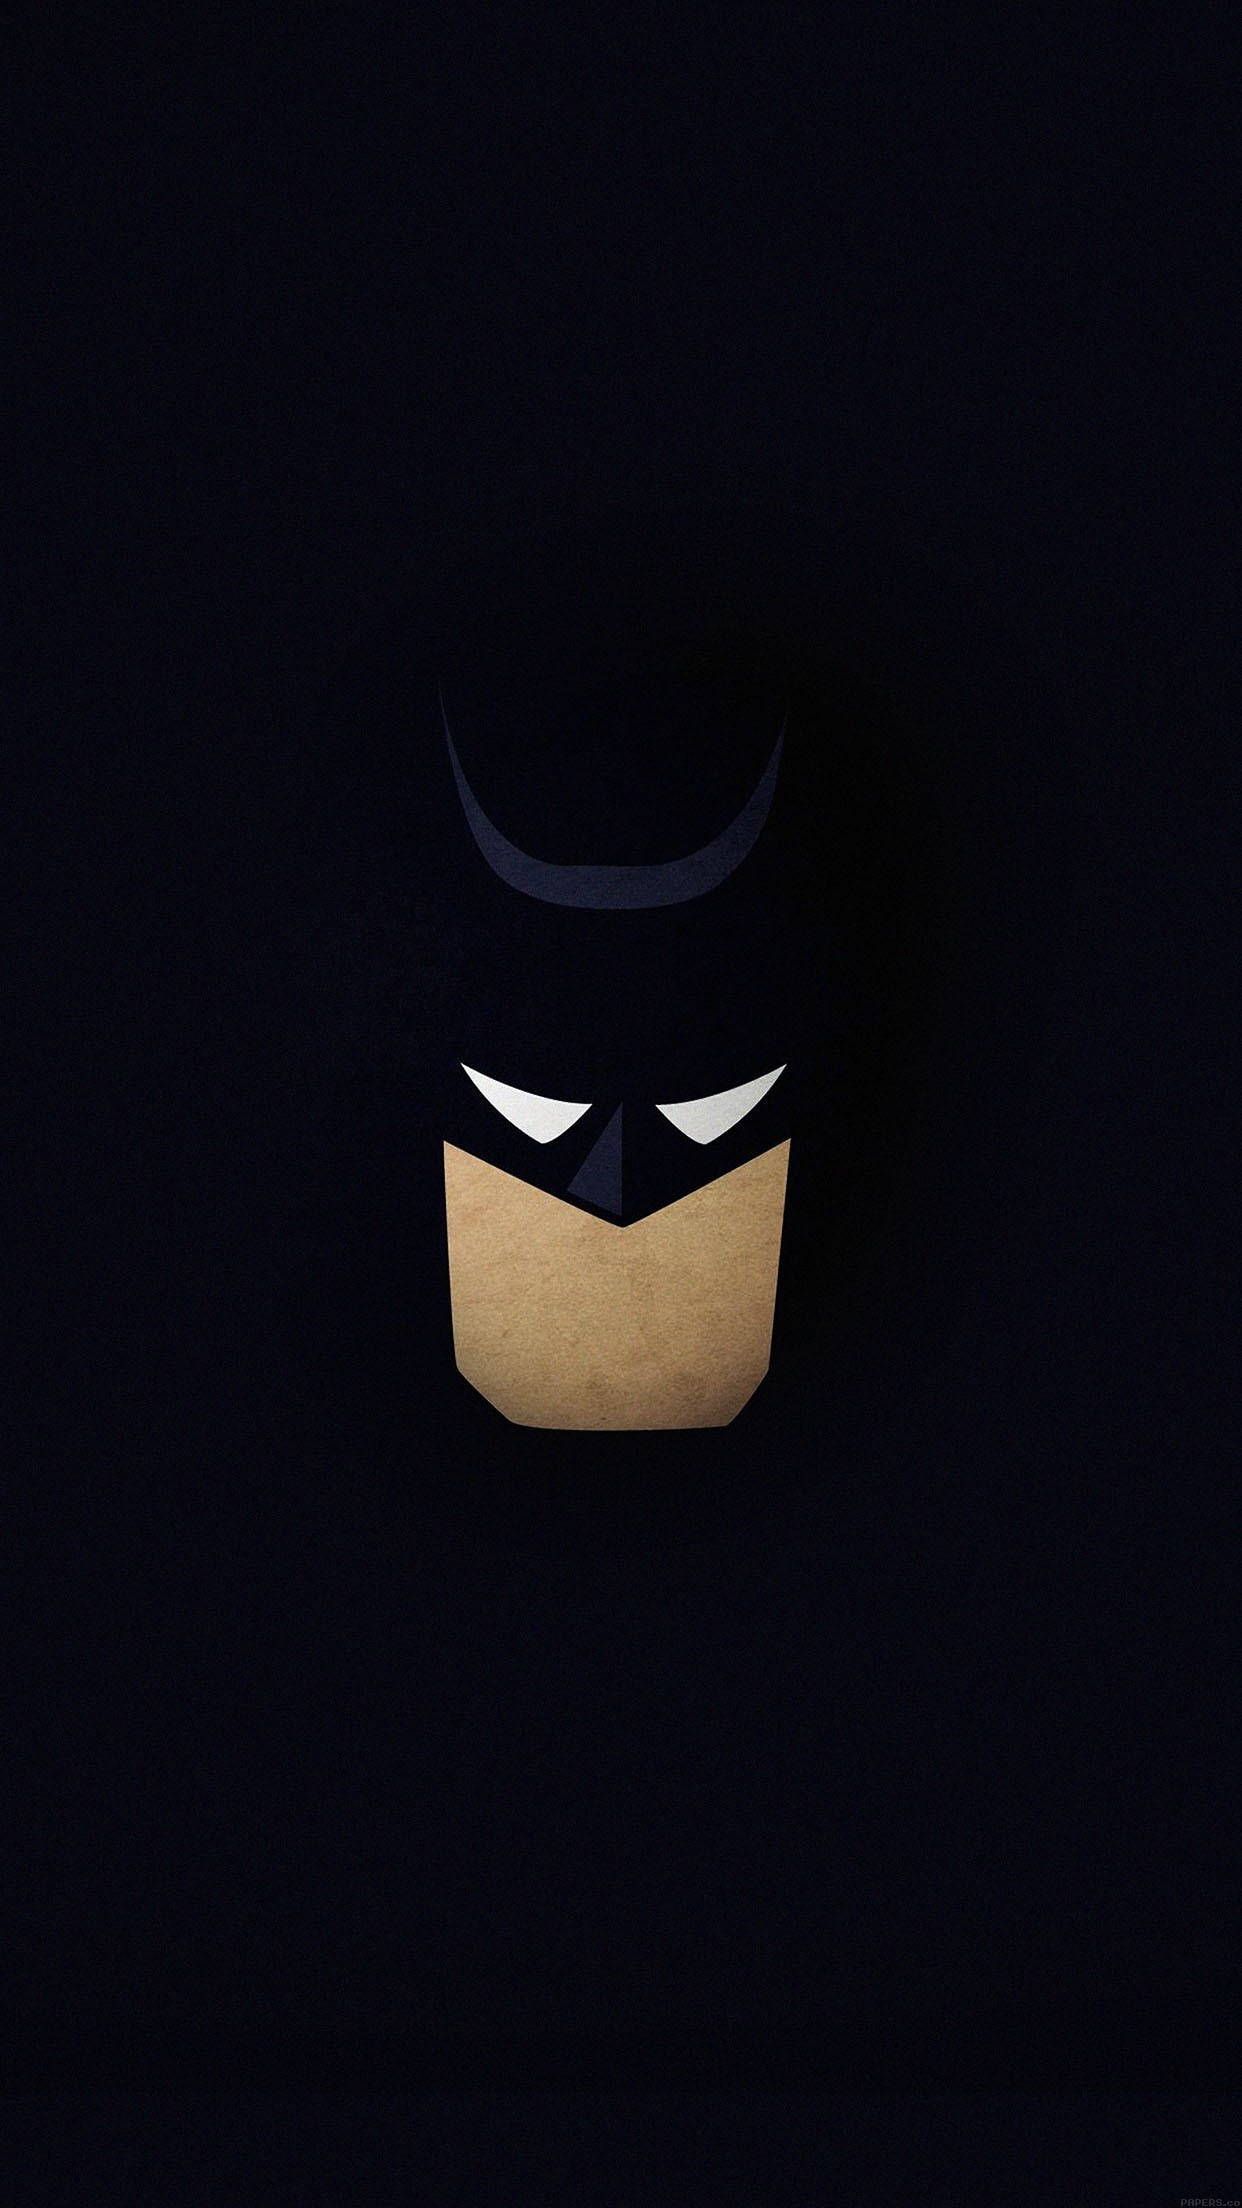 Batman cartoon wallpapers 84 background pictures - Superhero iphone wallpaper hd ...